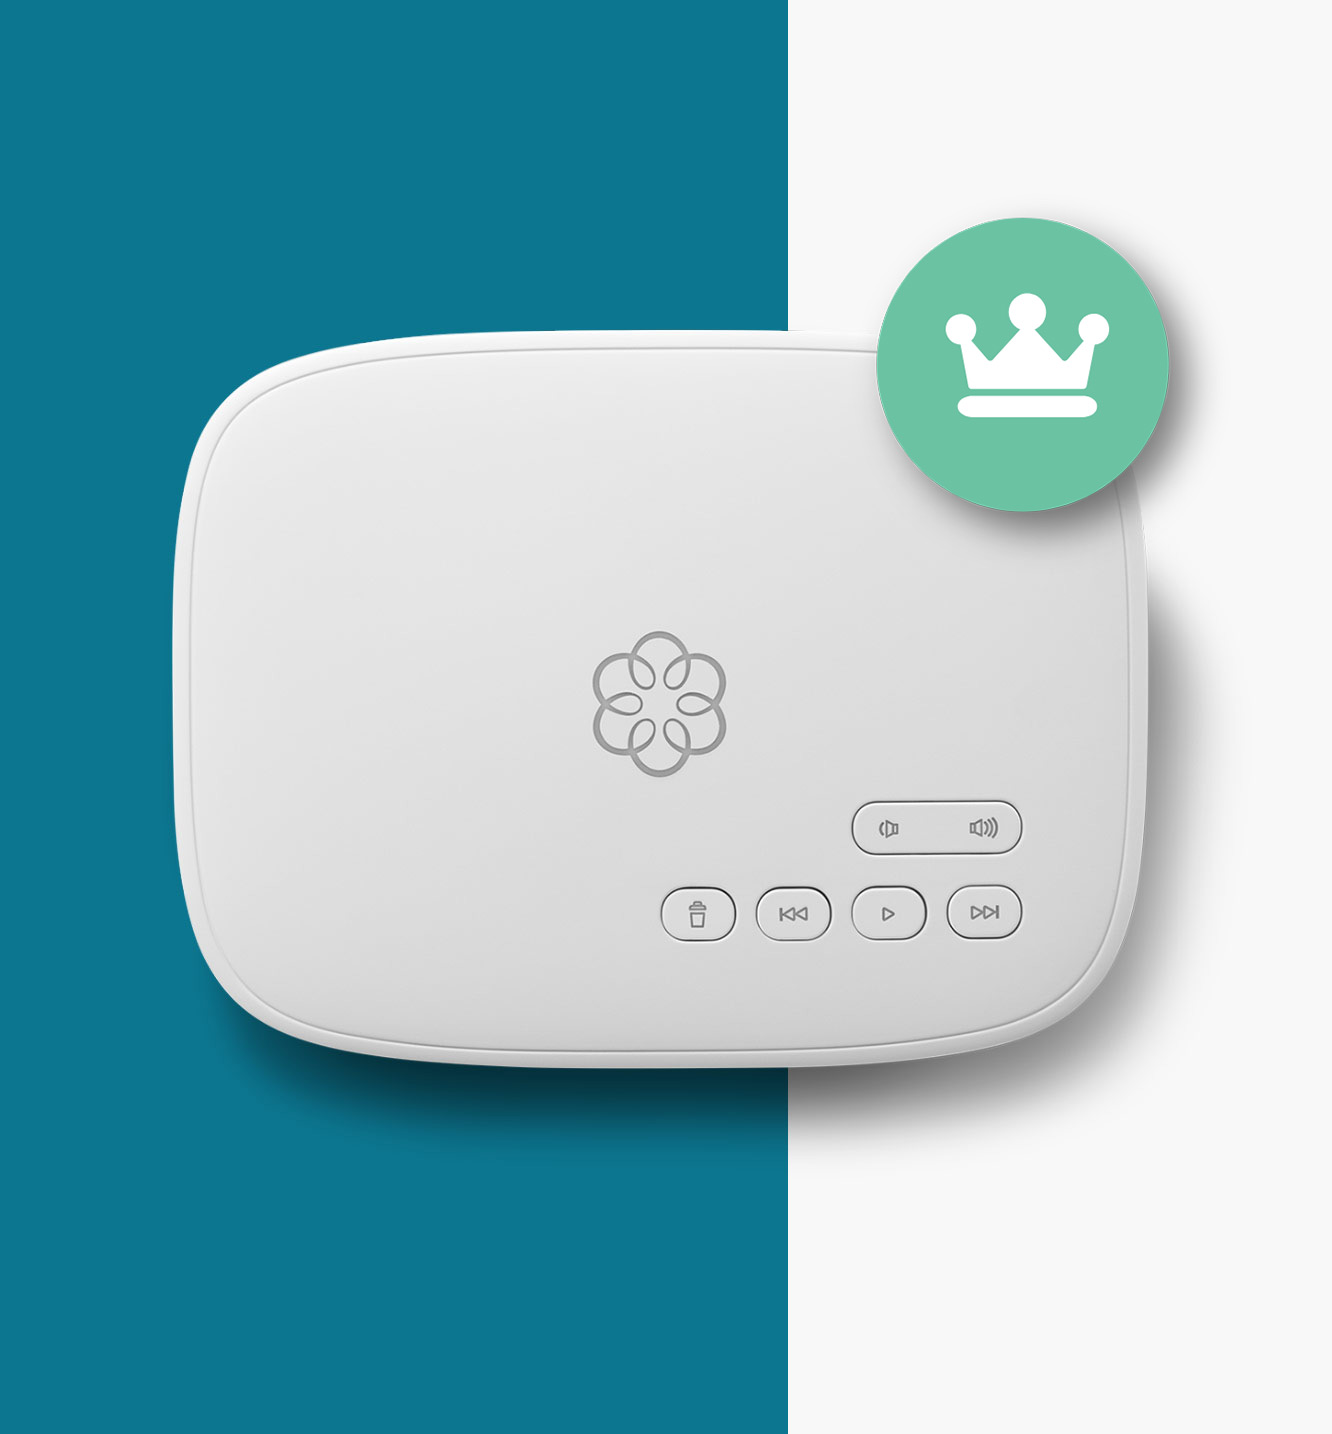 Ooma Premier device.